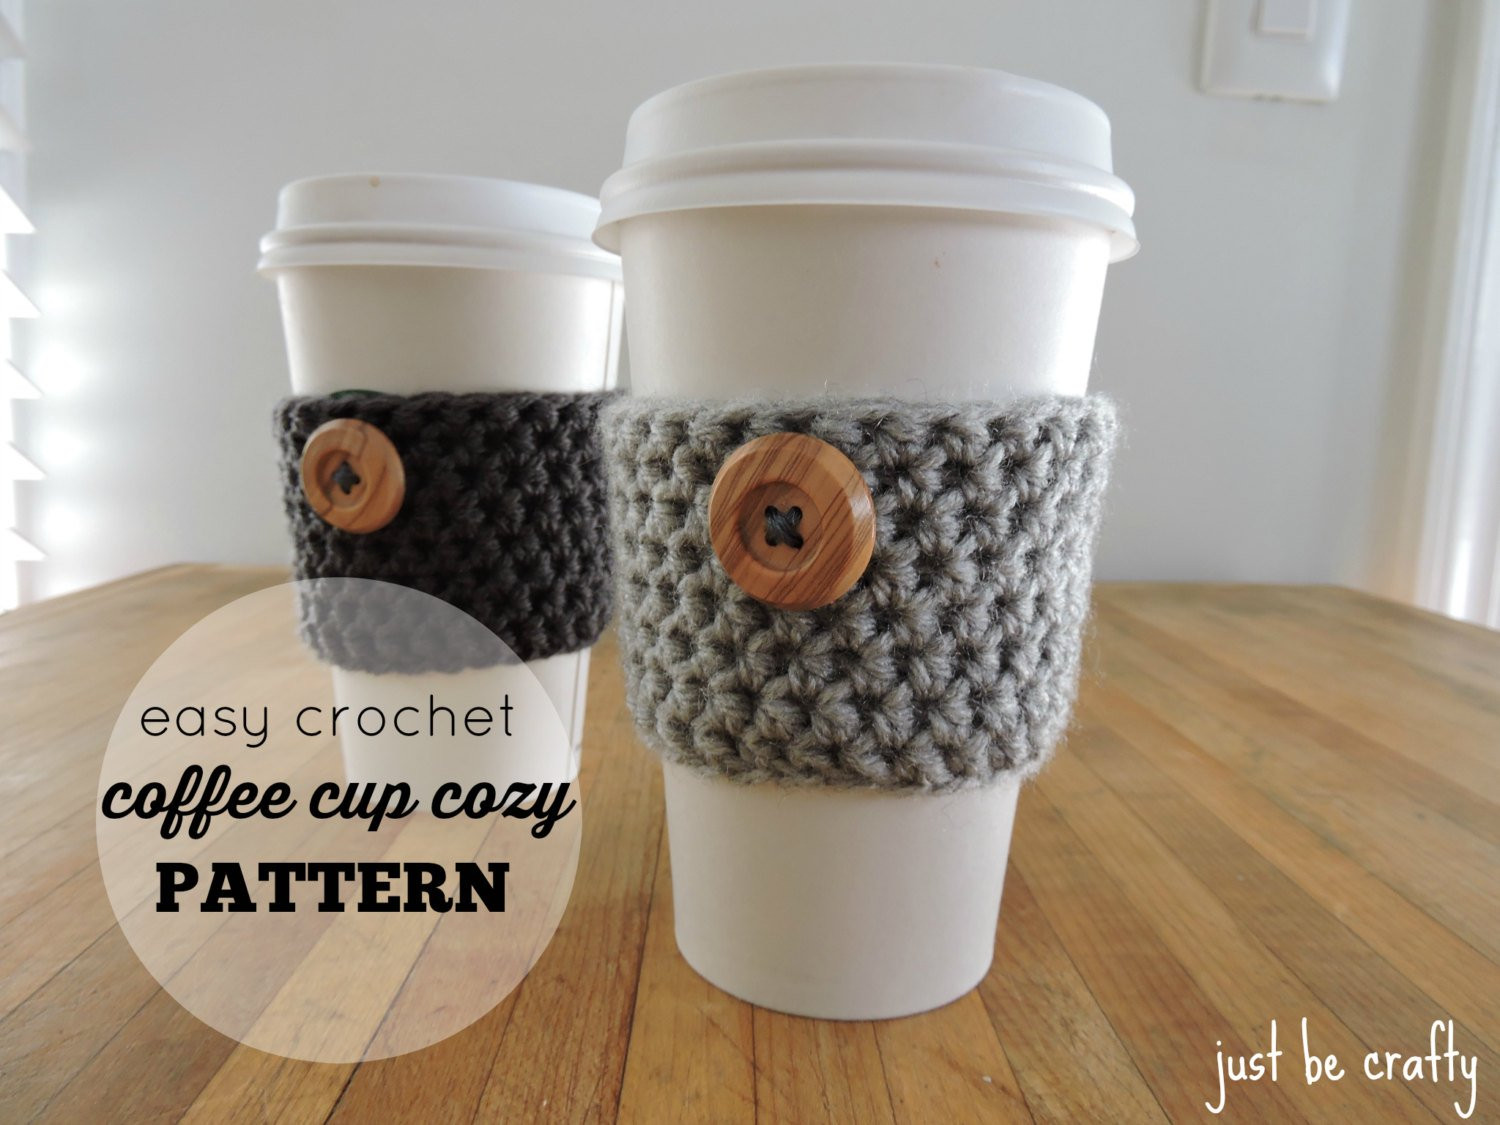 Crochet Coffee Cup Cozy Inspirational Crochet Coffee Cup Cozy Pattern Pdf Download Coffee Cup Cozy Of Crochet Coffee Cup Cozy Awesome Free Mug Cozy Crochet Patterns with Worsted Weight Yarn